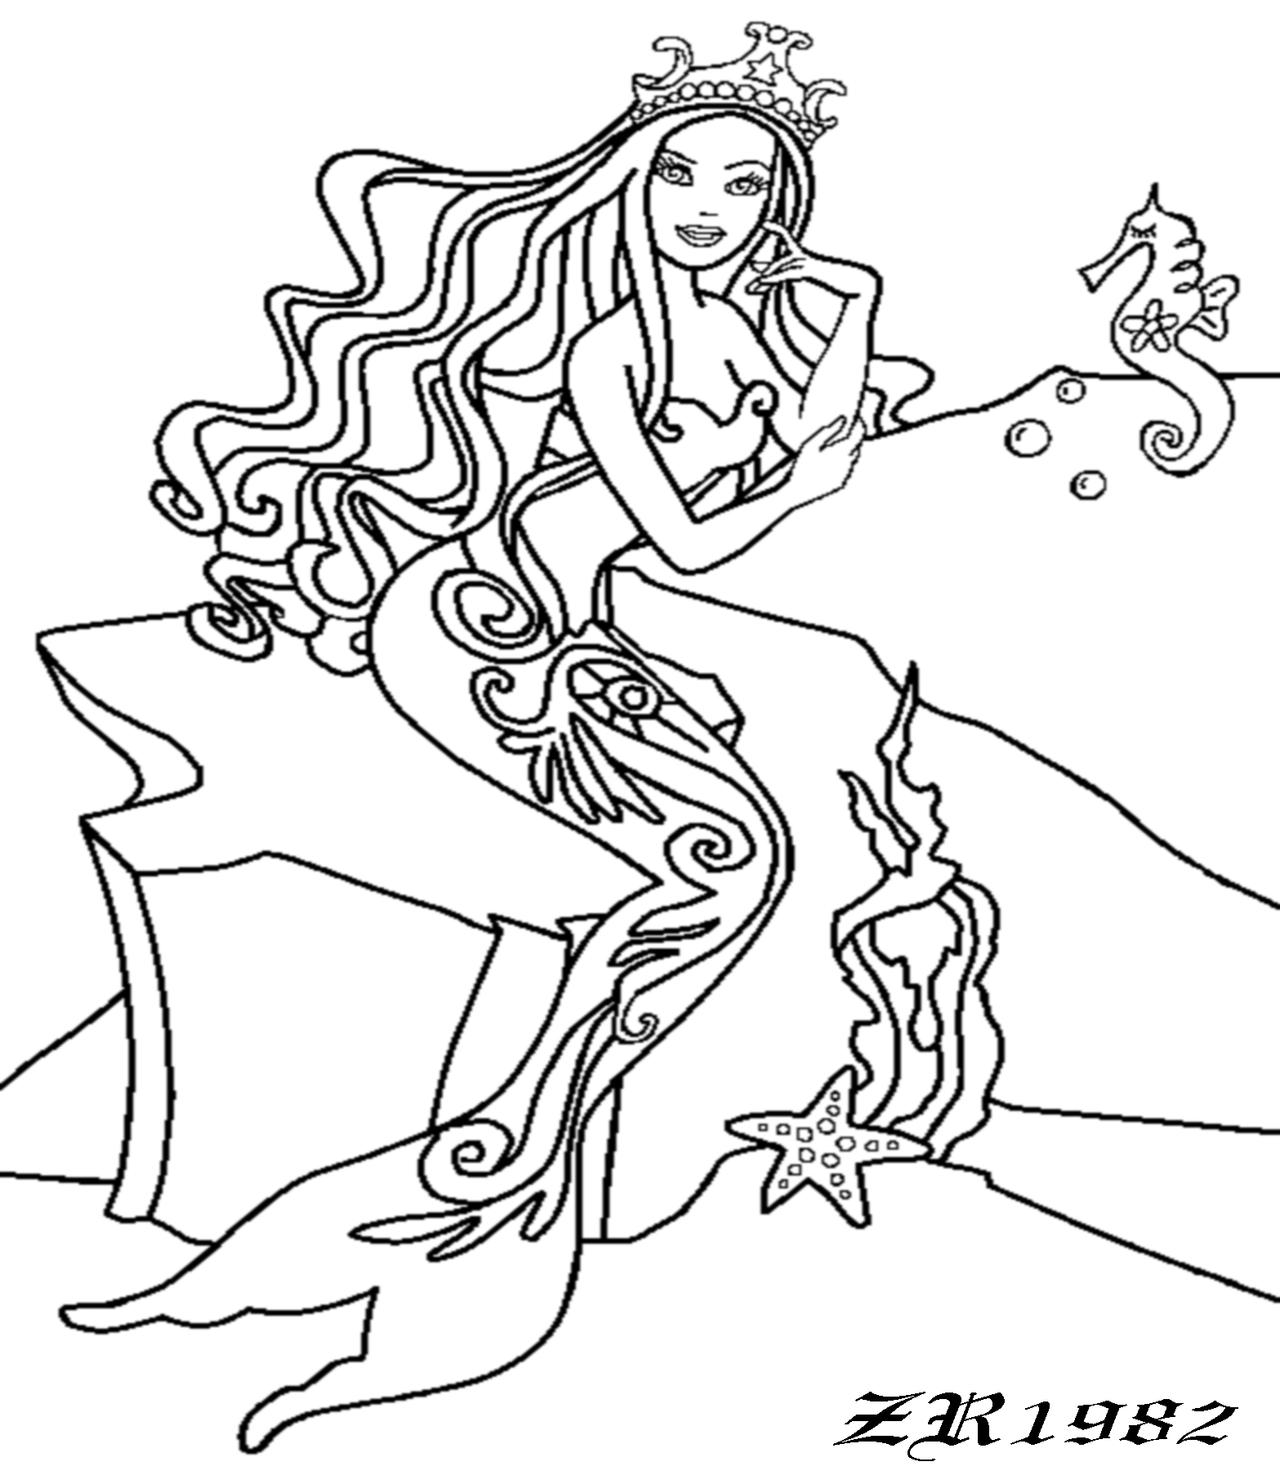 The mermaid barbie lineart by fluttershy1982 on deviantart for Barbie mermaid coloring pages